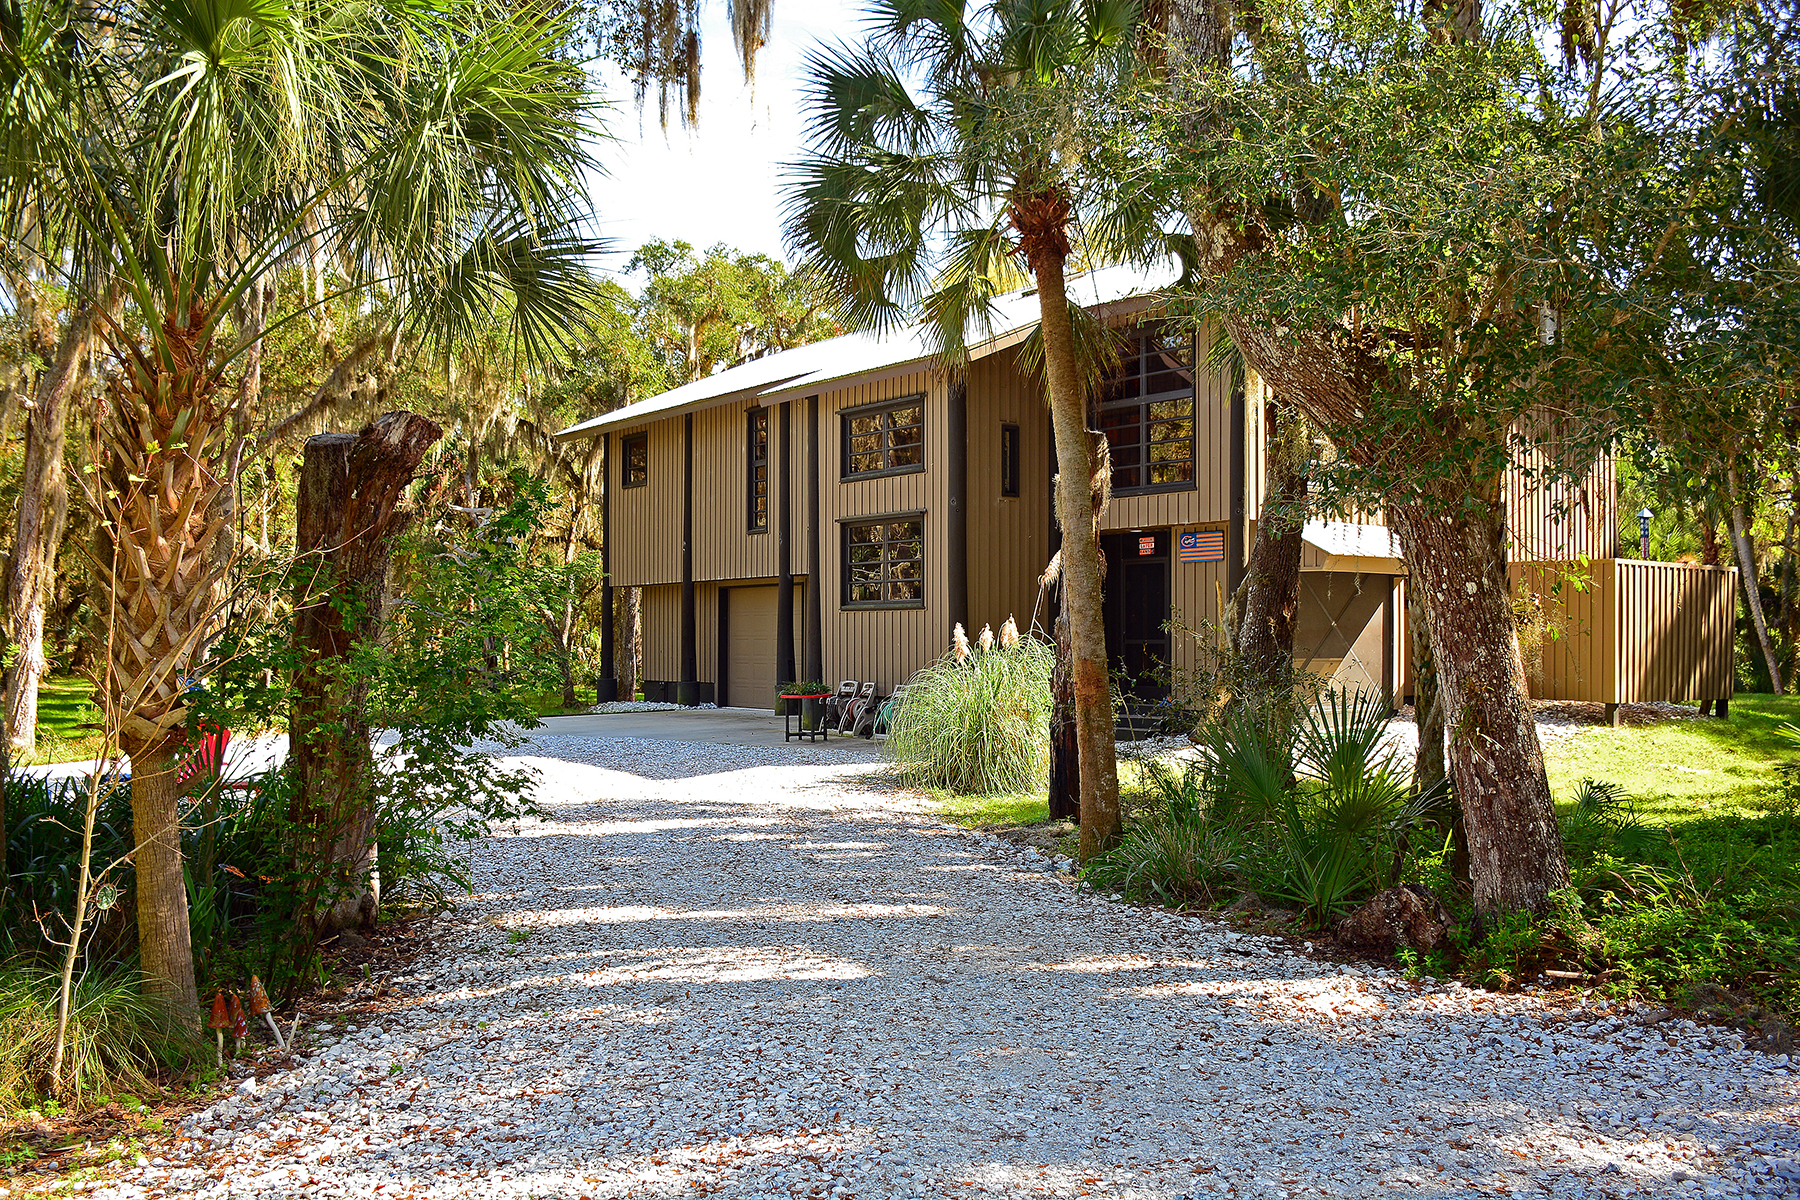 Single Family Home for Sale at HIDDEN RIVER 4500 Hidden River Rd Sarasota, Florida 34240 United States